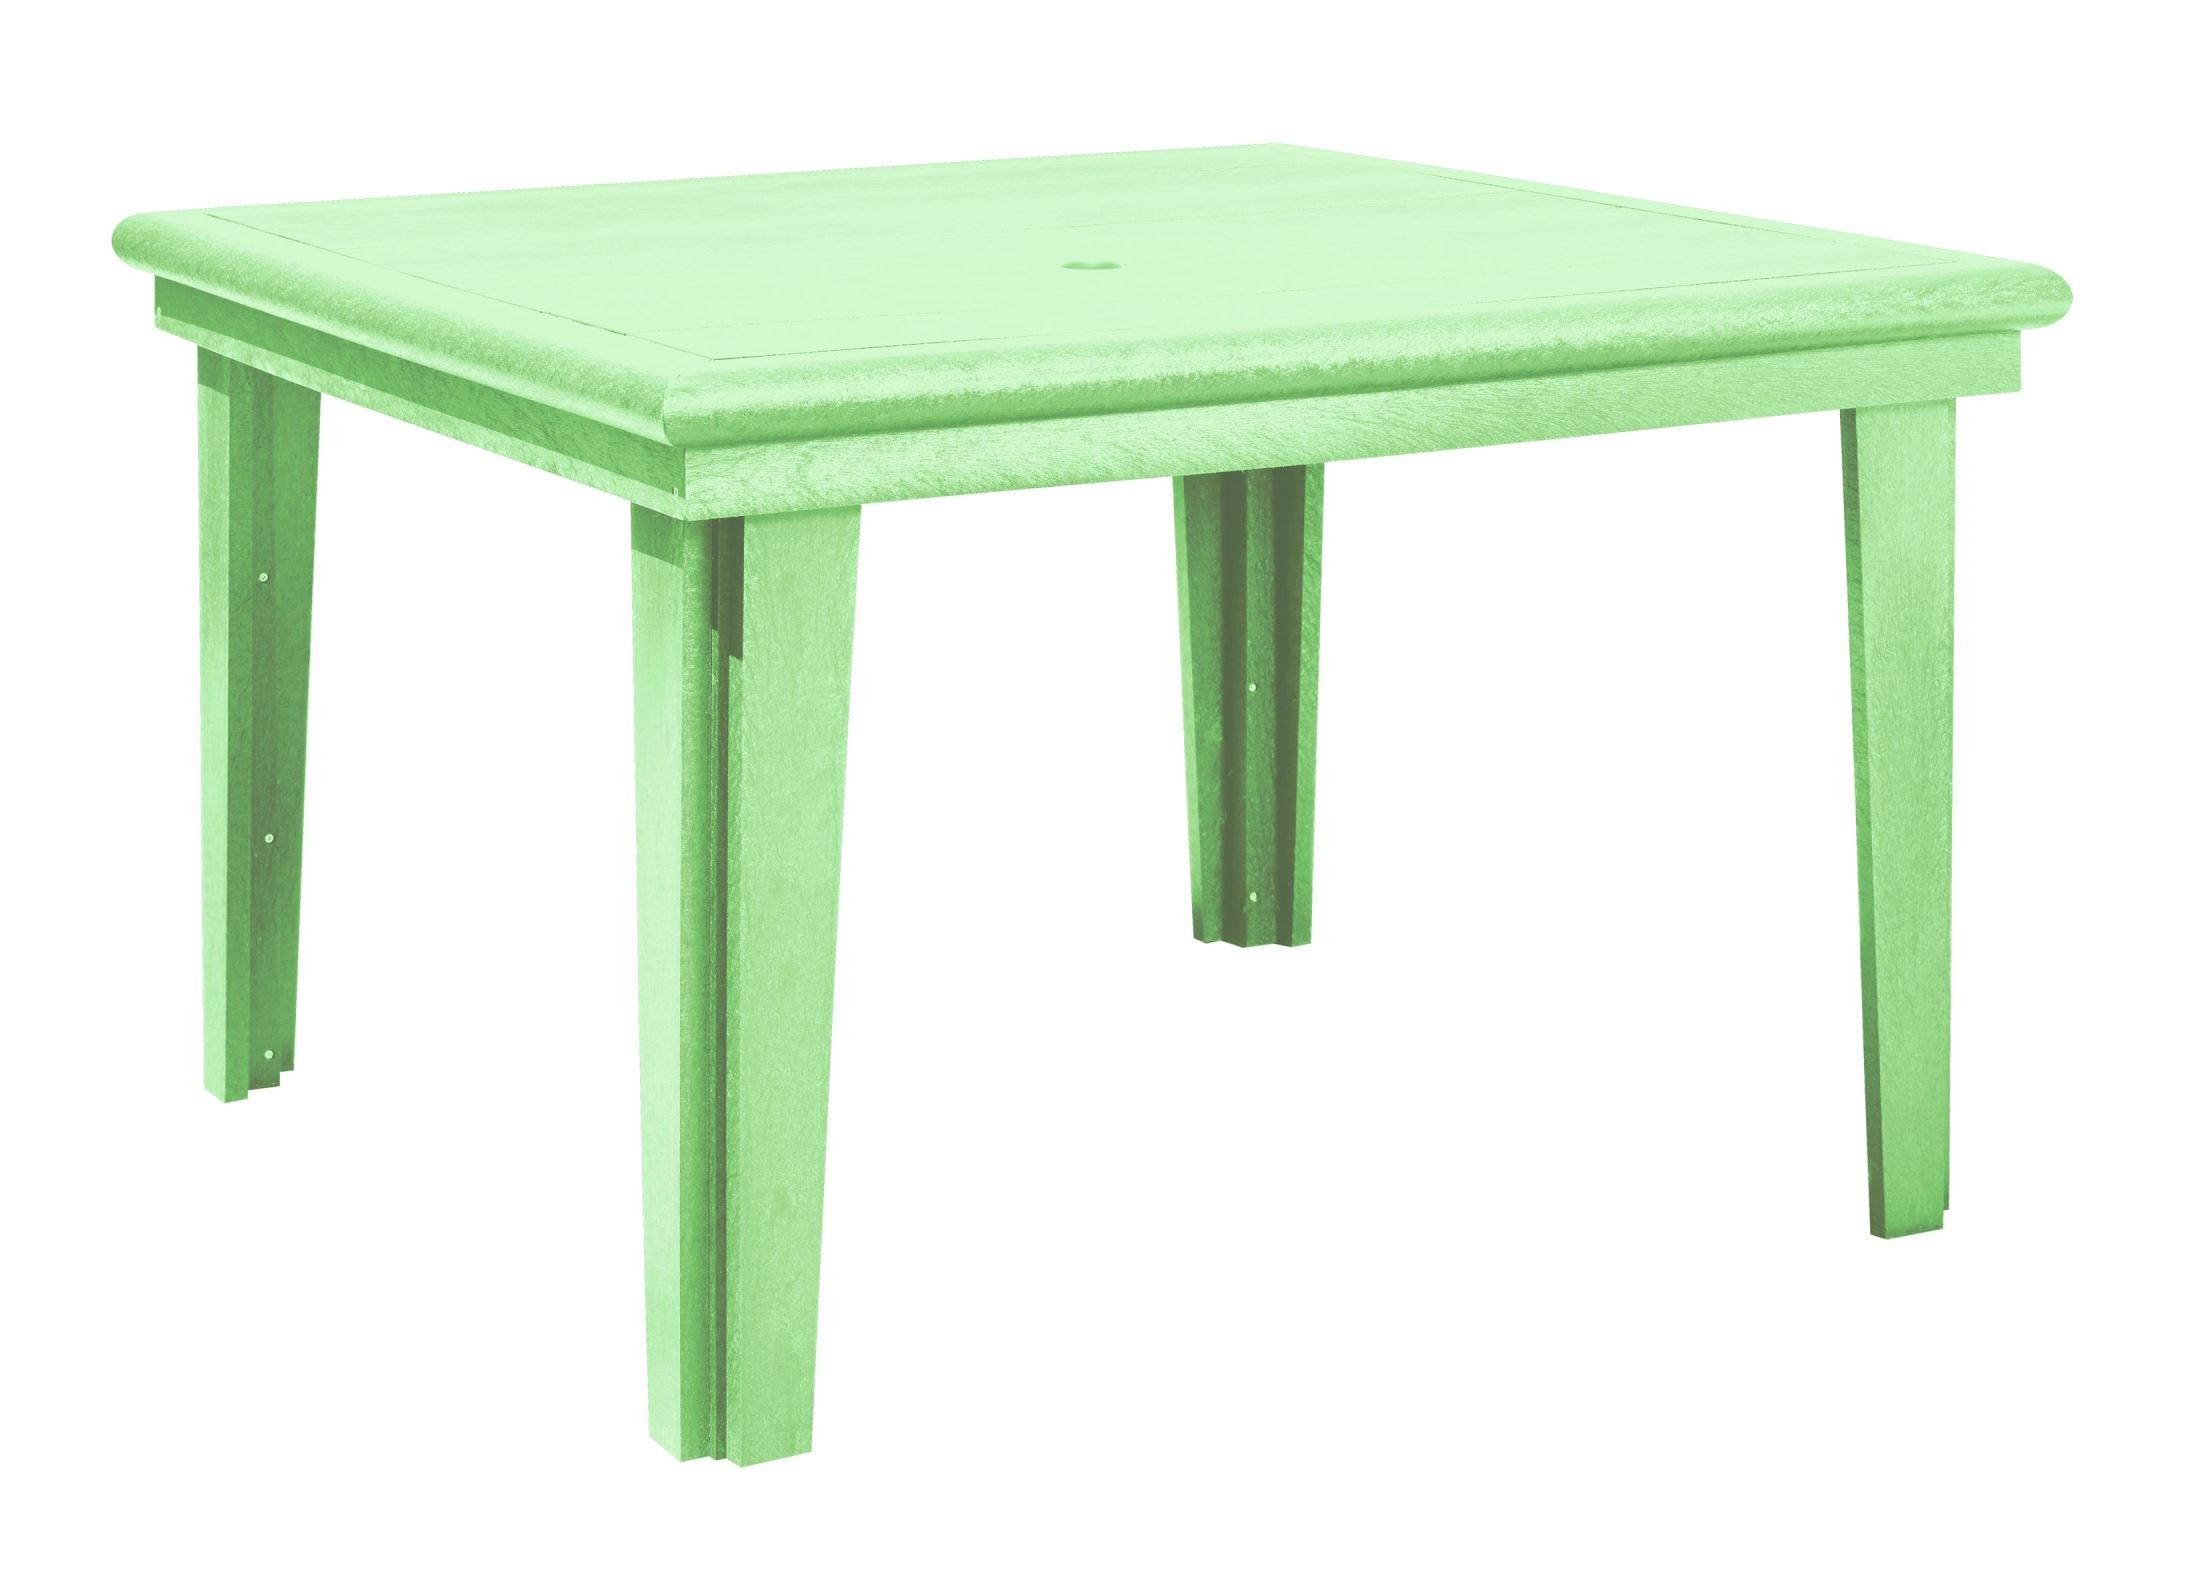 Generations Lime Green 46 Square Dining Table from CR